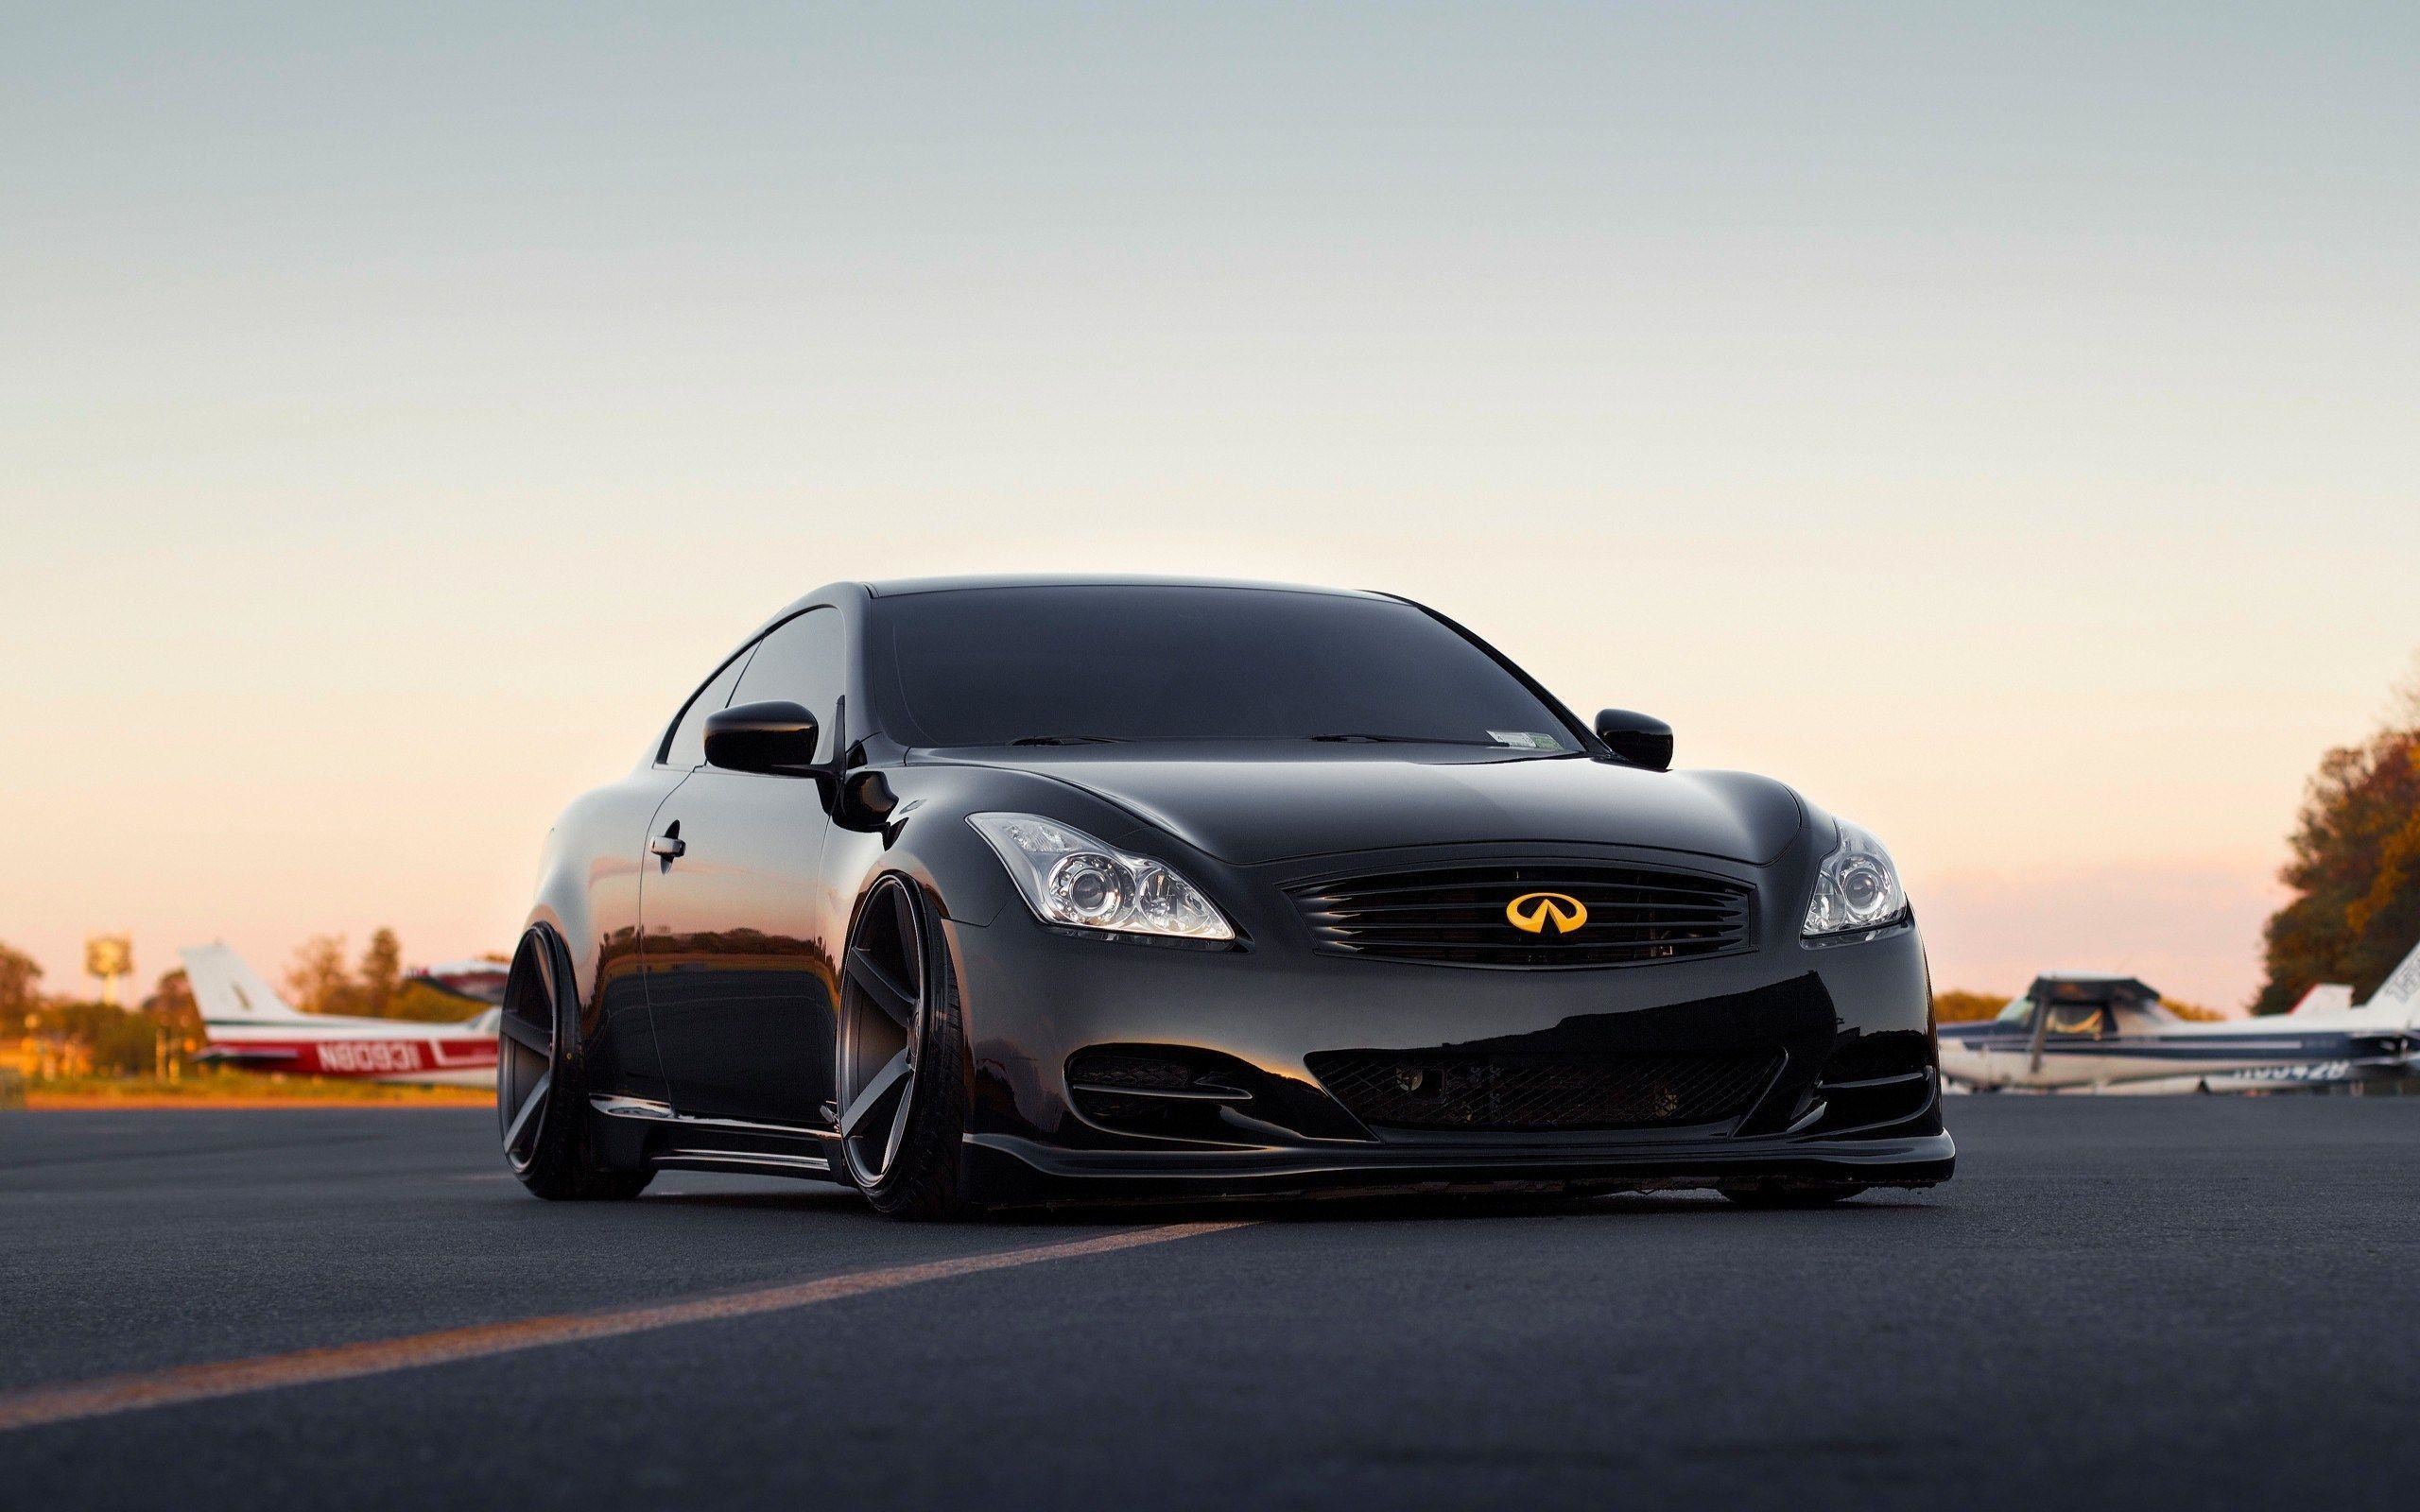 2560x1600 infinity g35 image custome | Infiniti G35 Coupe Custom Custom Red G35 Coupe  | your cars | Pinterest | Rigs, Cars and Nissan